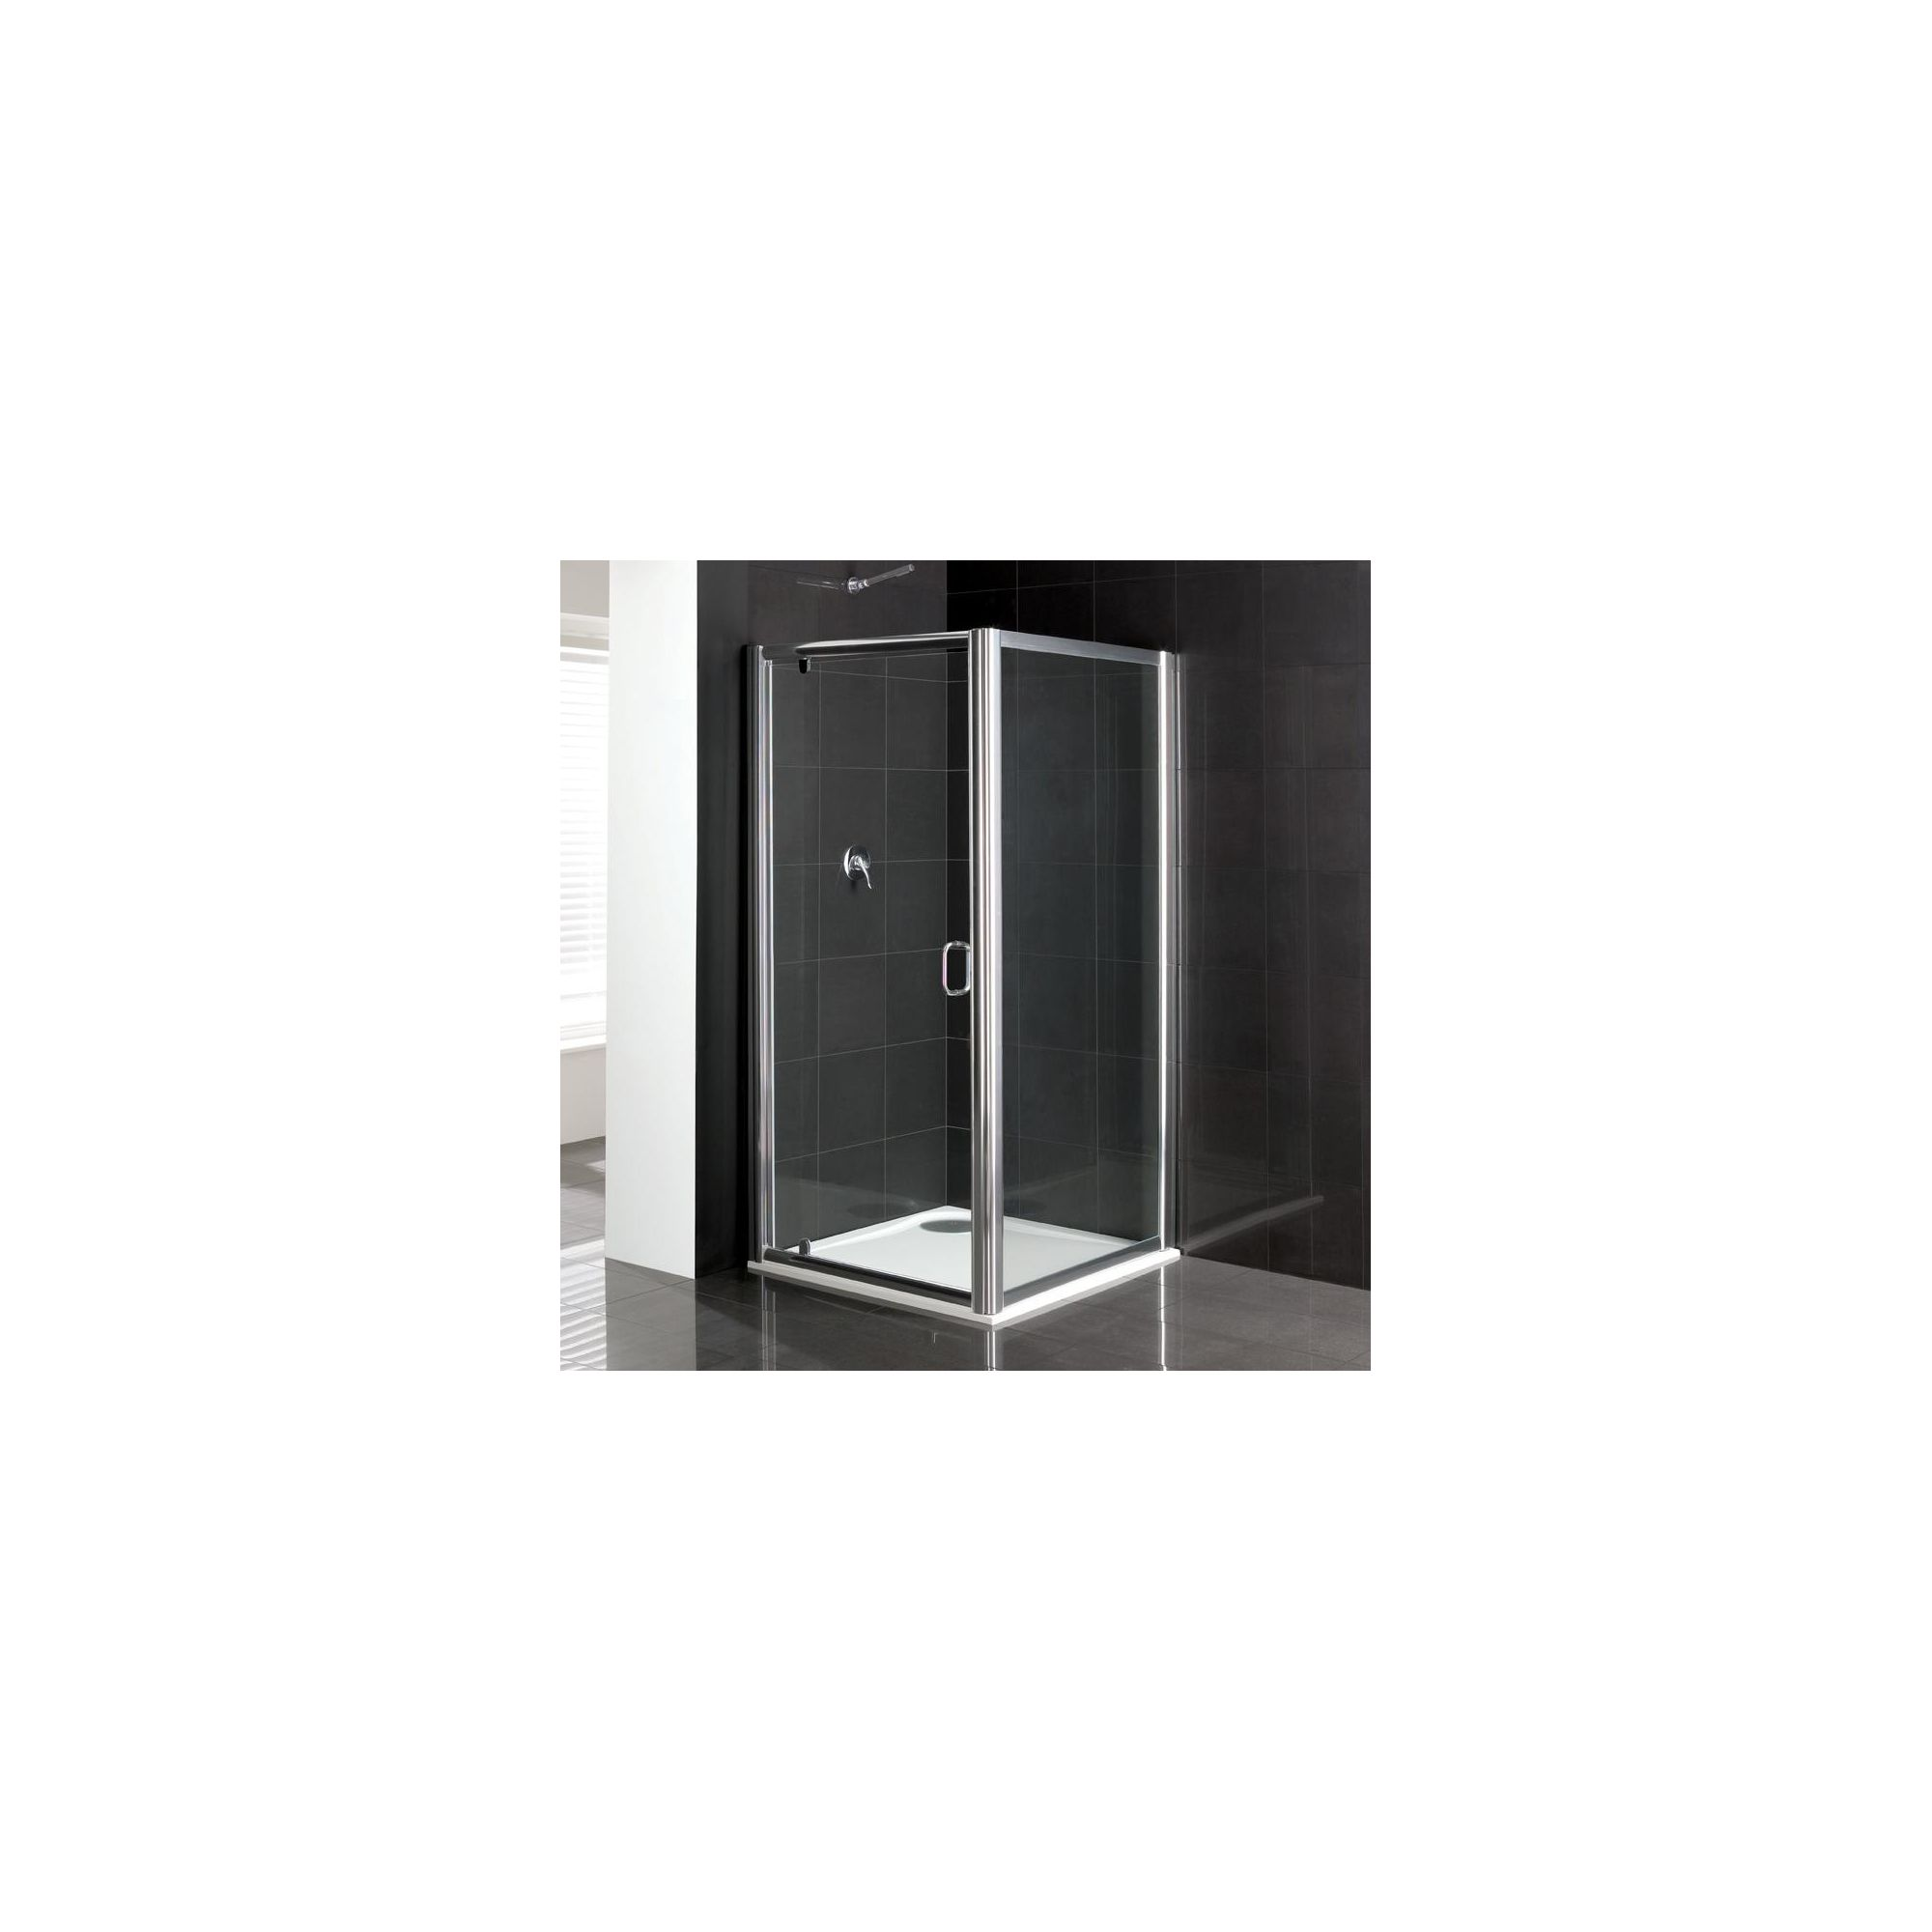 Duchy Elite Silver Pivot Door Shower Enclosure with Towel Rail, 900mm x 800mm, Standard Tray, 6mm Glass at Tesco Direct